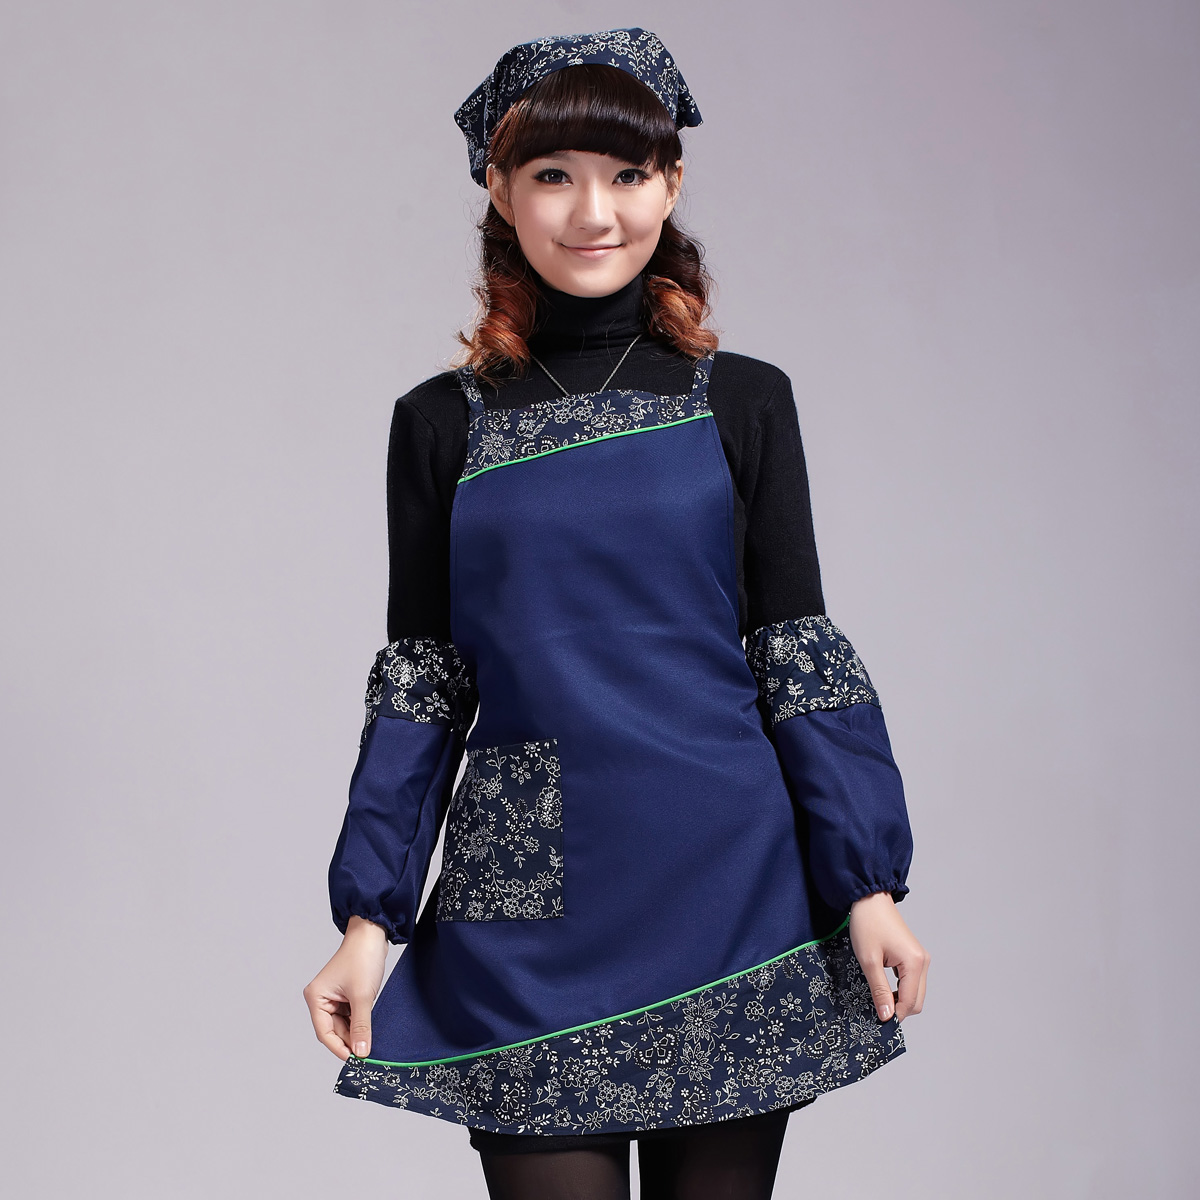 Special offer! Vintage chinese ethnic style apron calico cotton kitchen sleeveless apron (can be customized)(China (Mainland))